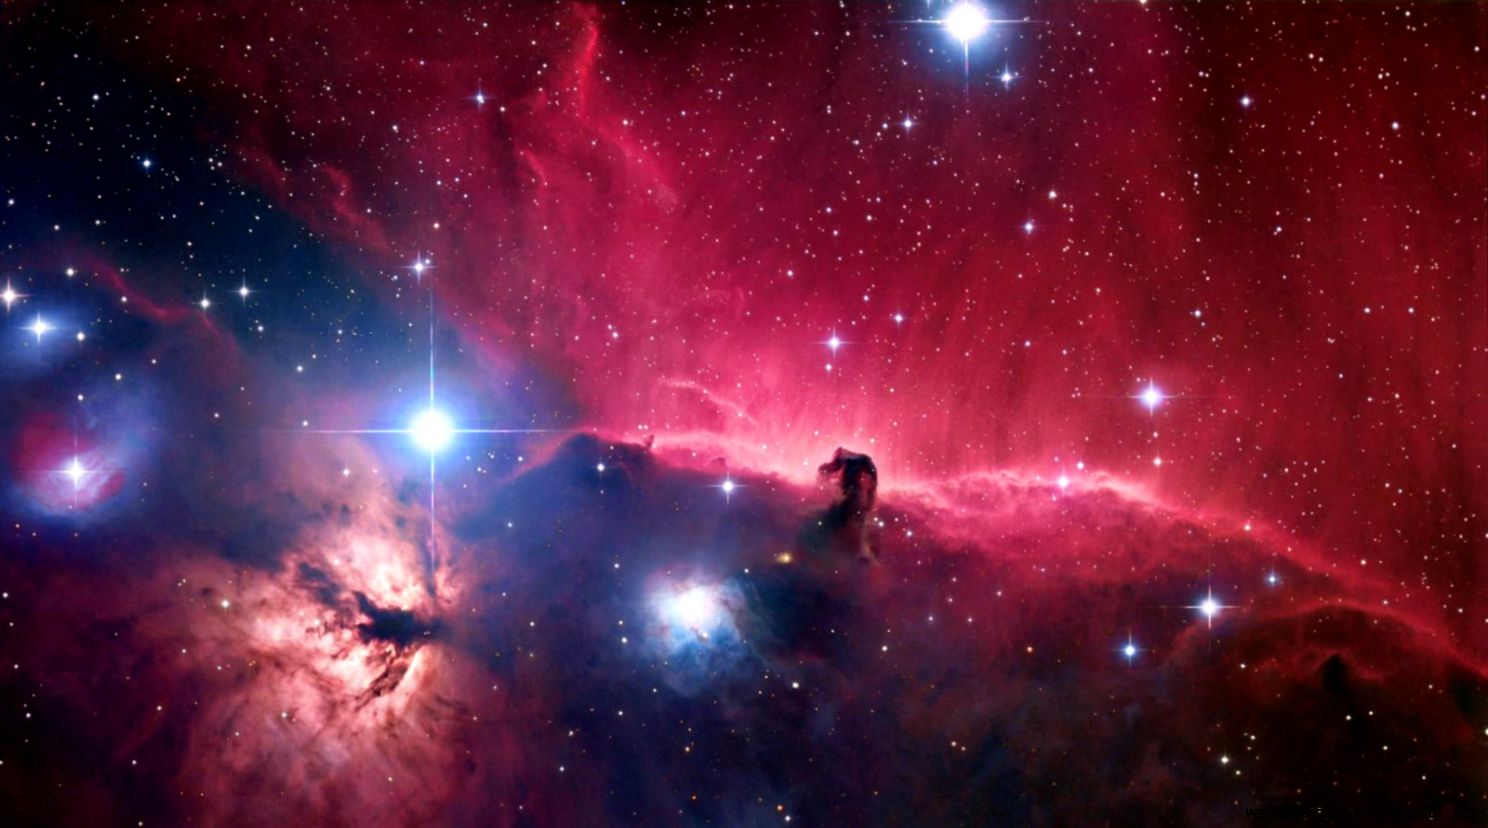 View Original Size Orion Nebula HD Desktop Wallpaper Dual Monitor Image Source From This